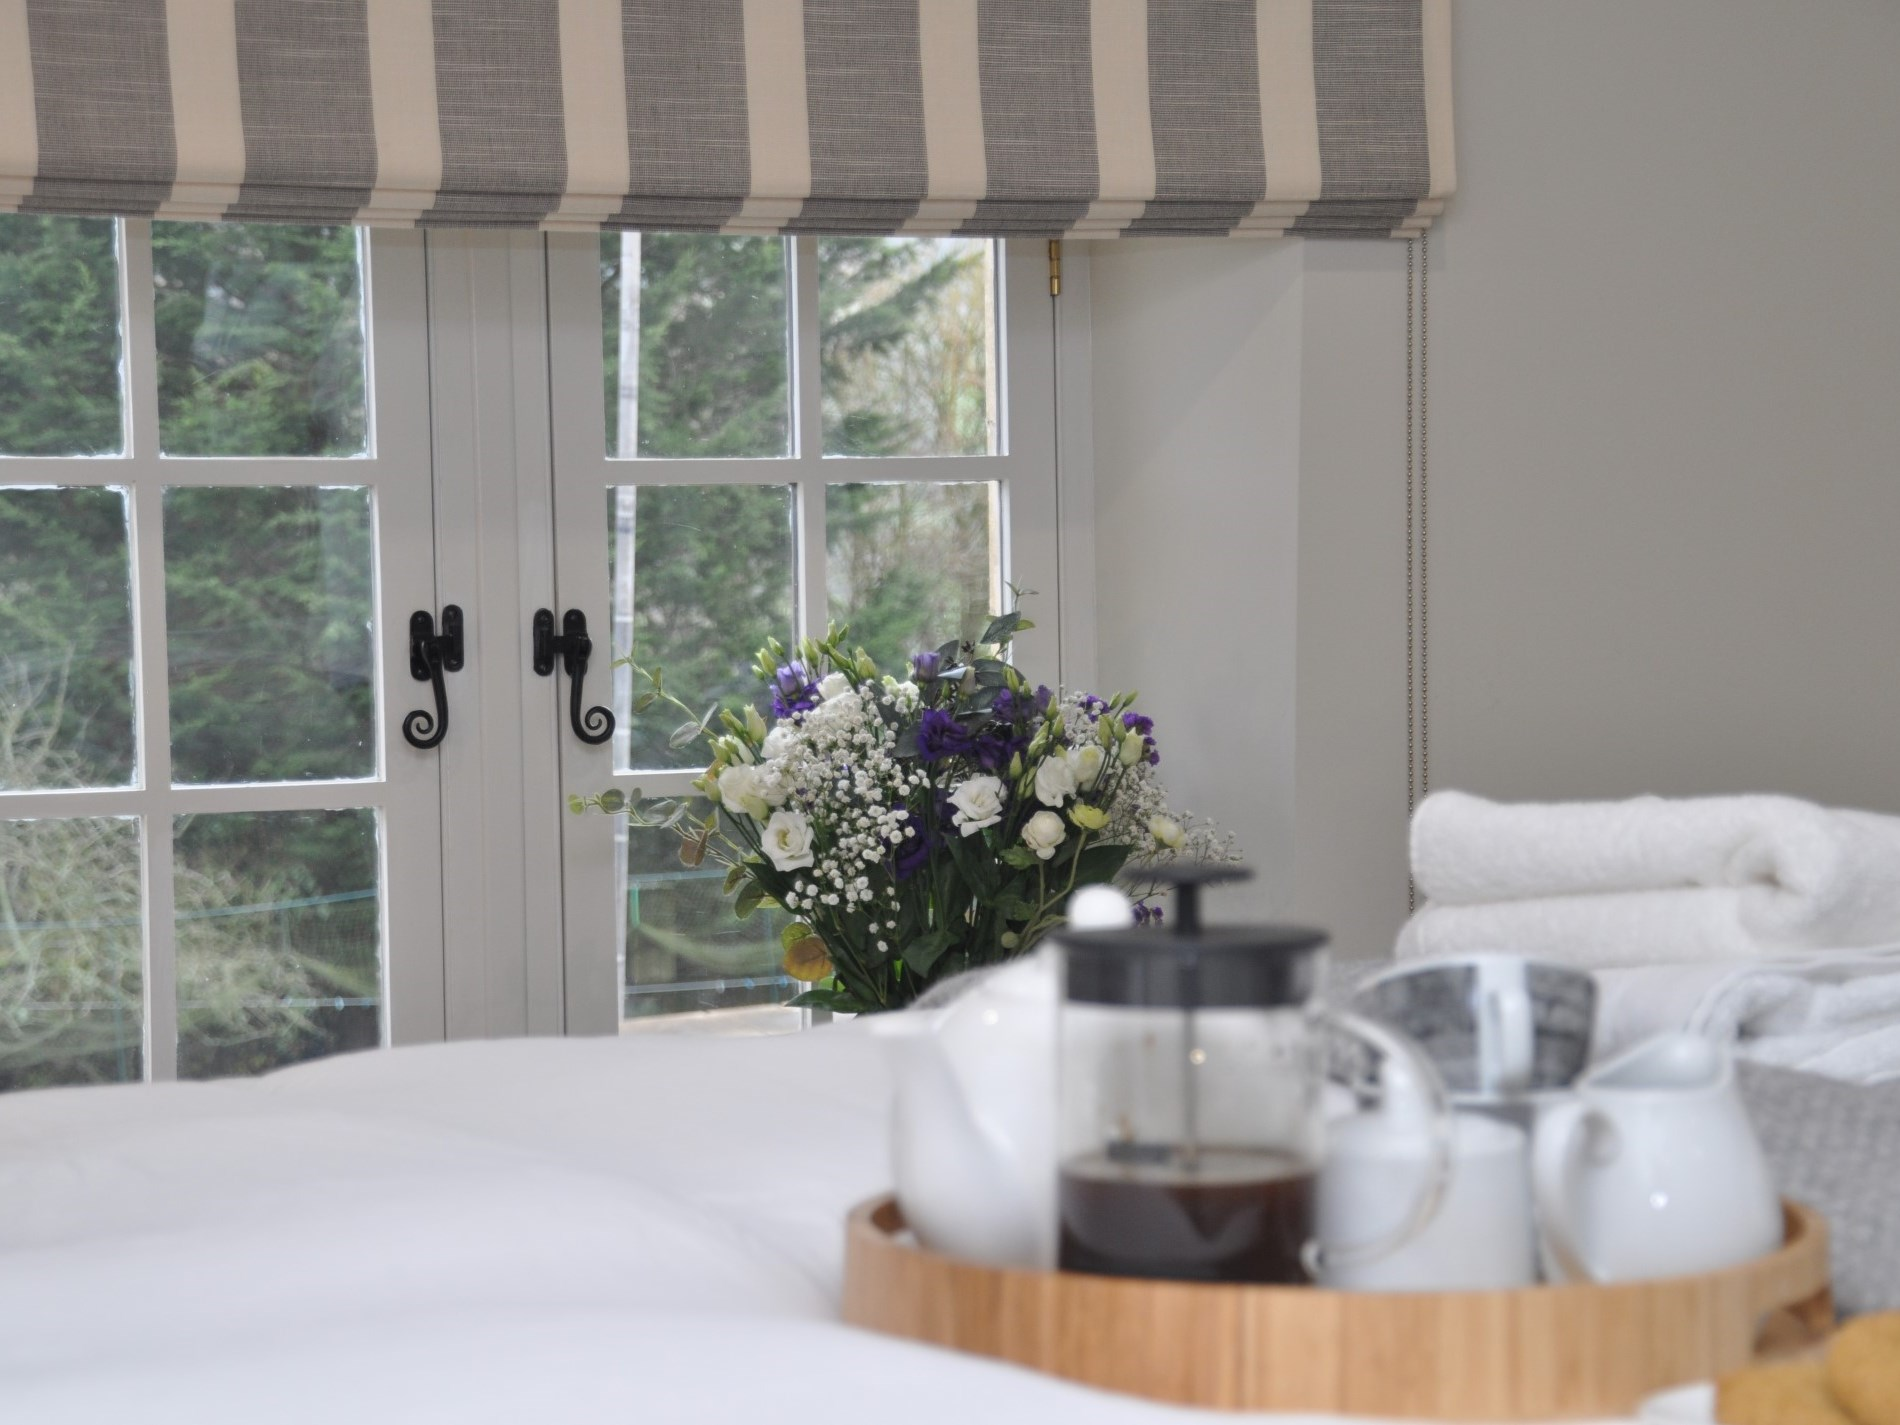 Breakfast in bed with countryside views